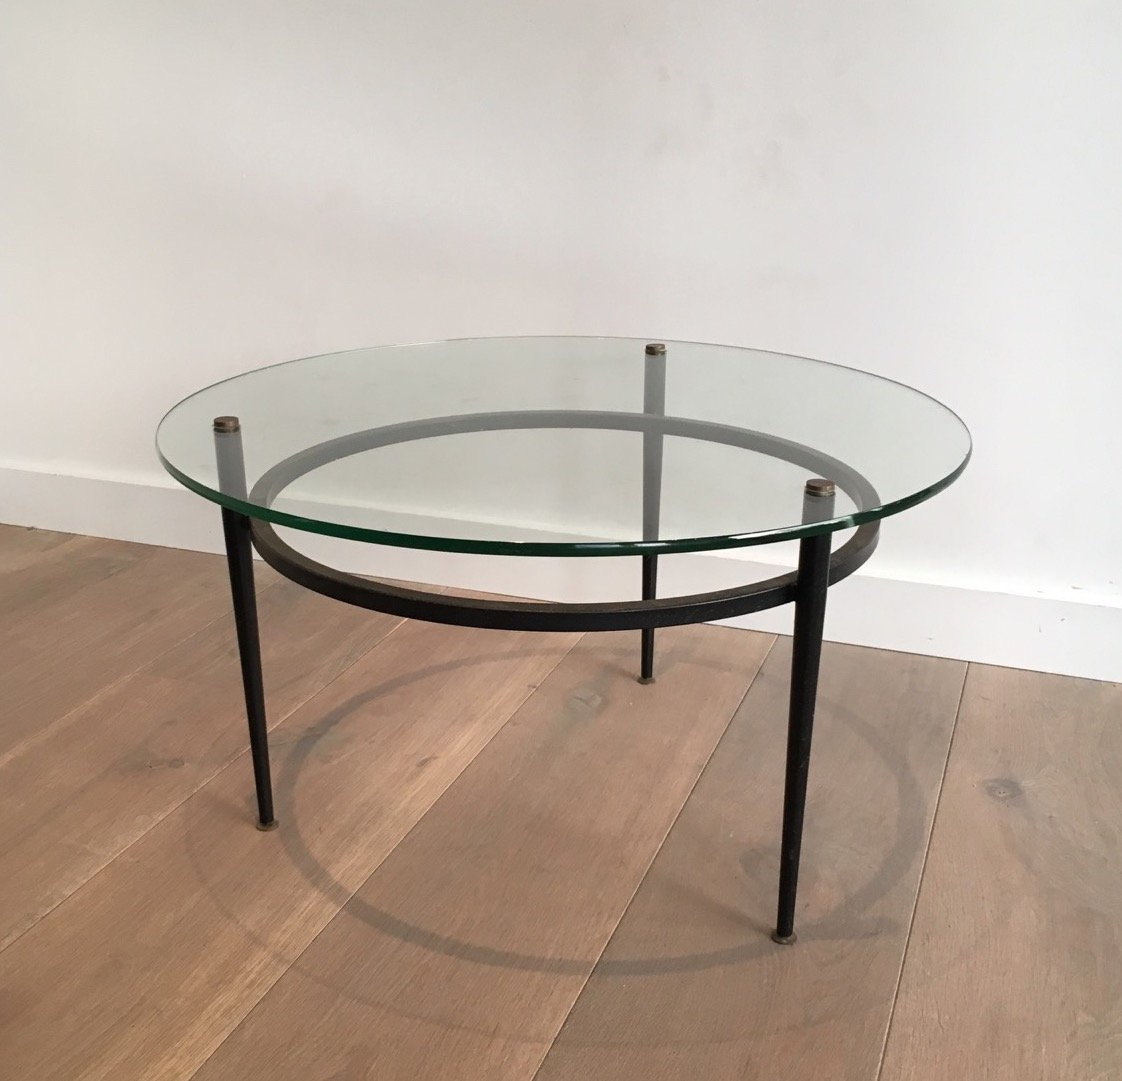 Vintage Small Round Glass Coffee Table for sale at Pamono